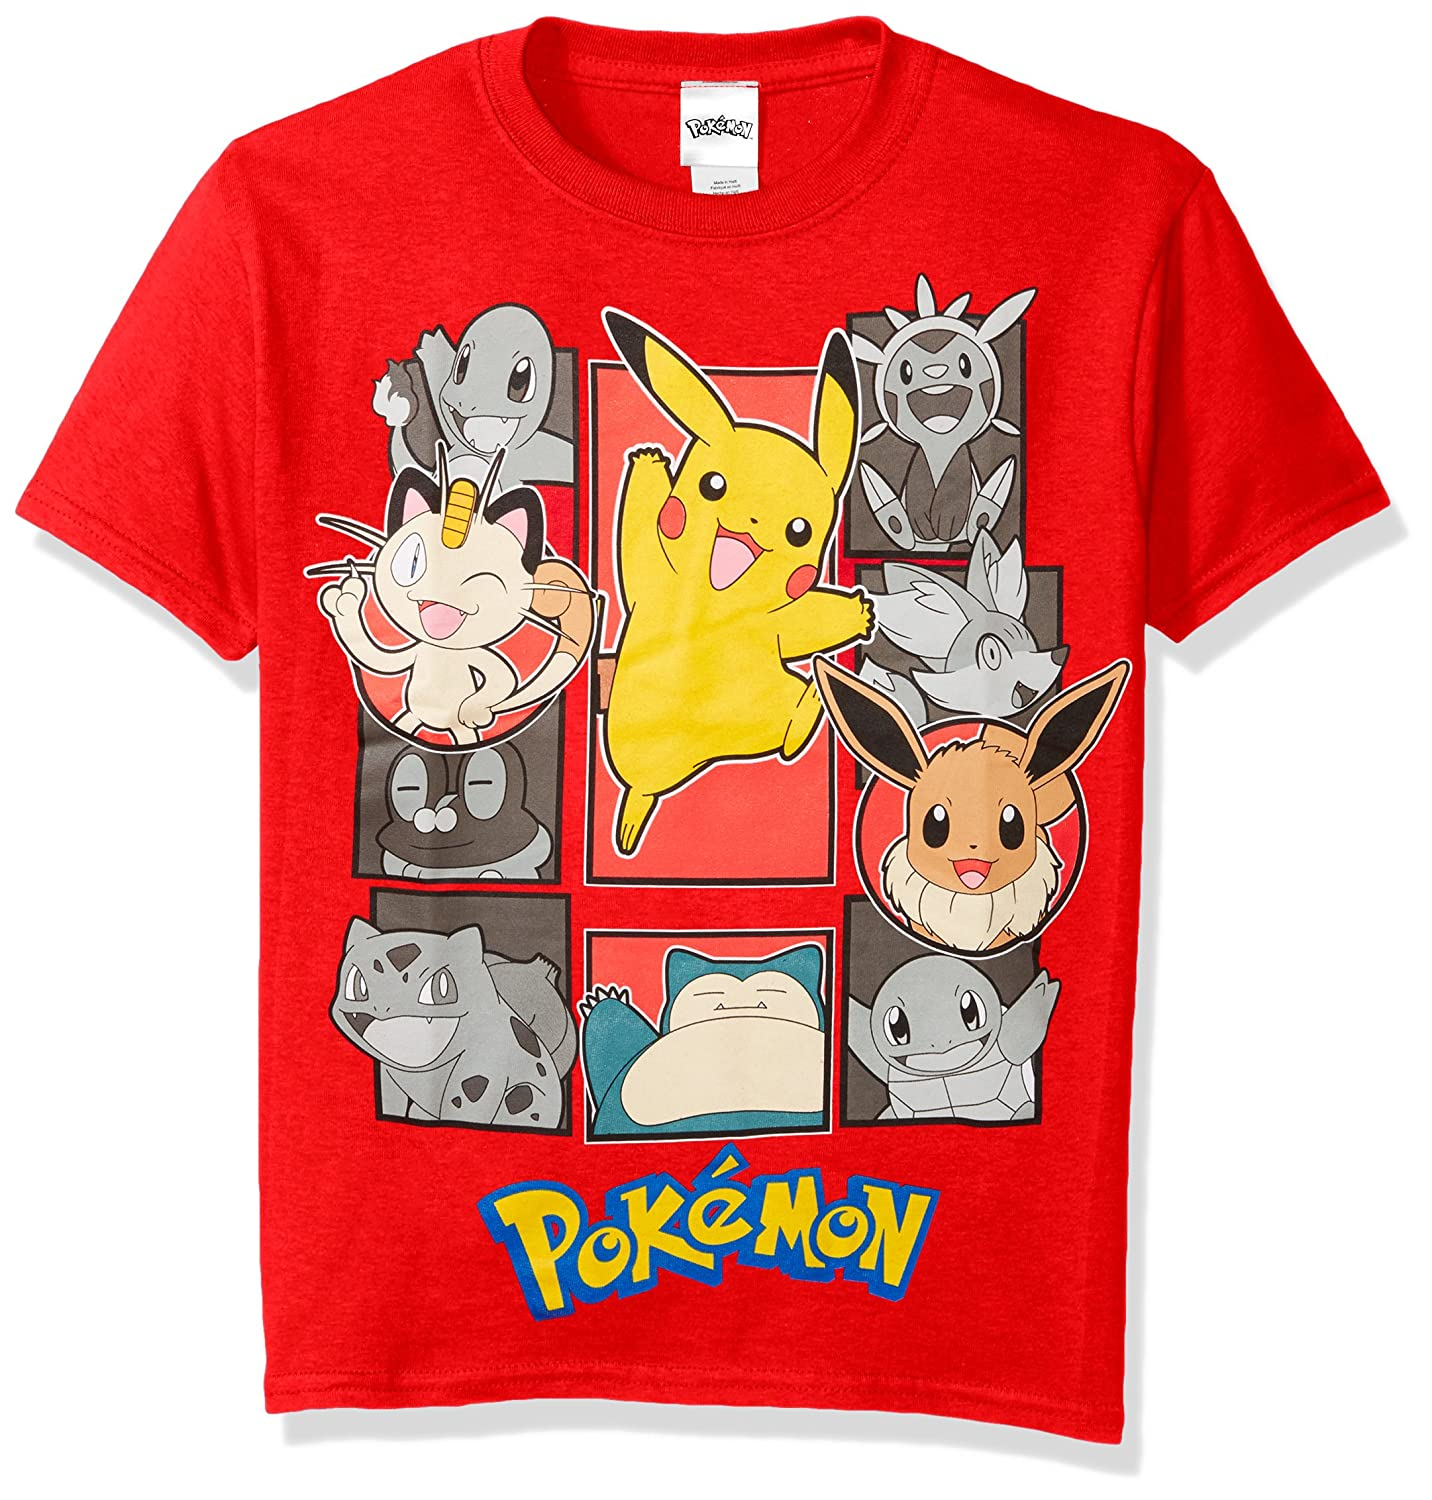 Pokemon Boys' Pokemon Group Short Sleeve Tee Freeze Children's Apparel MUSB026-5000B